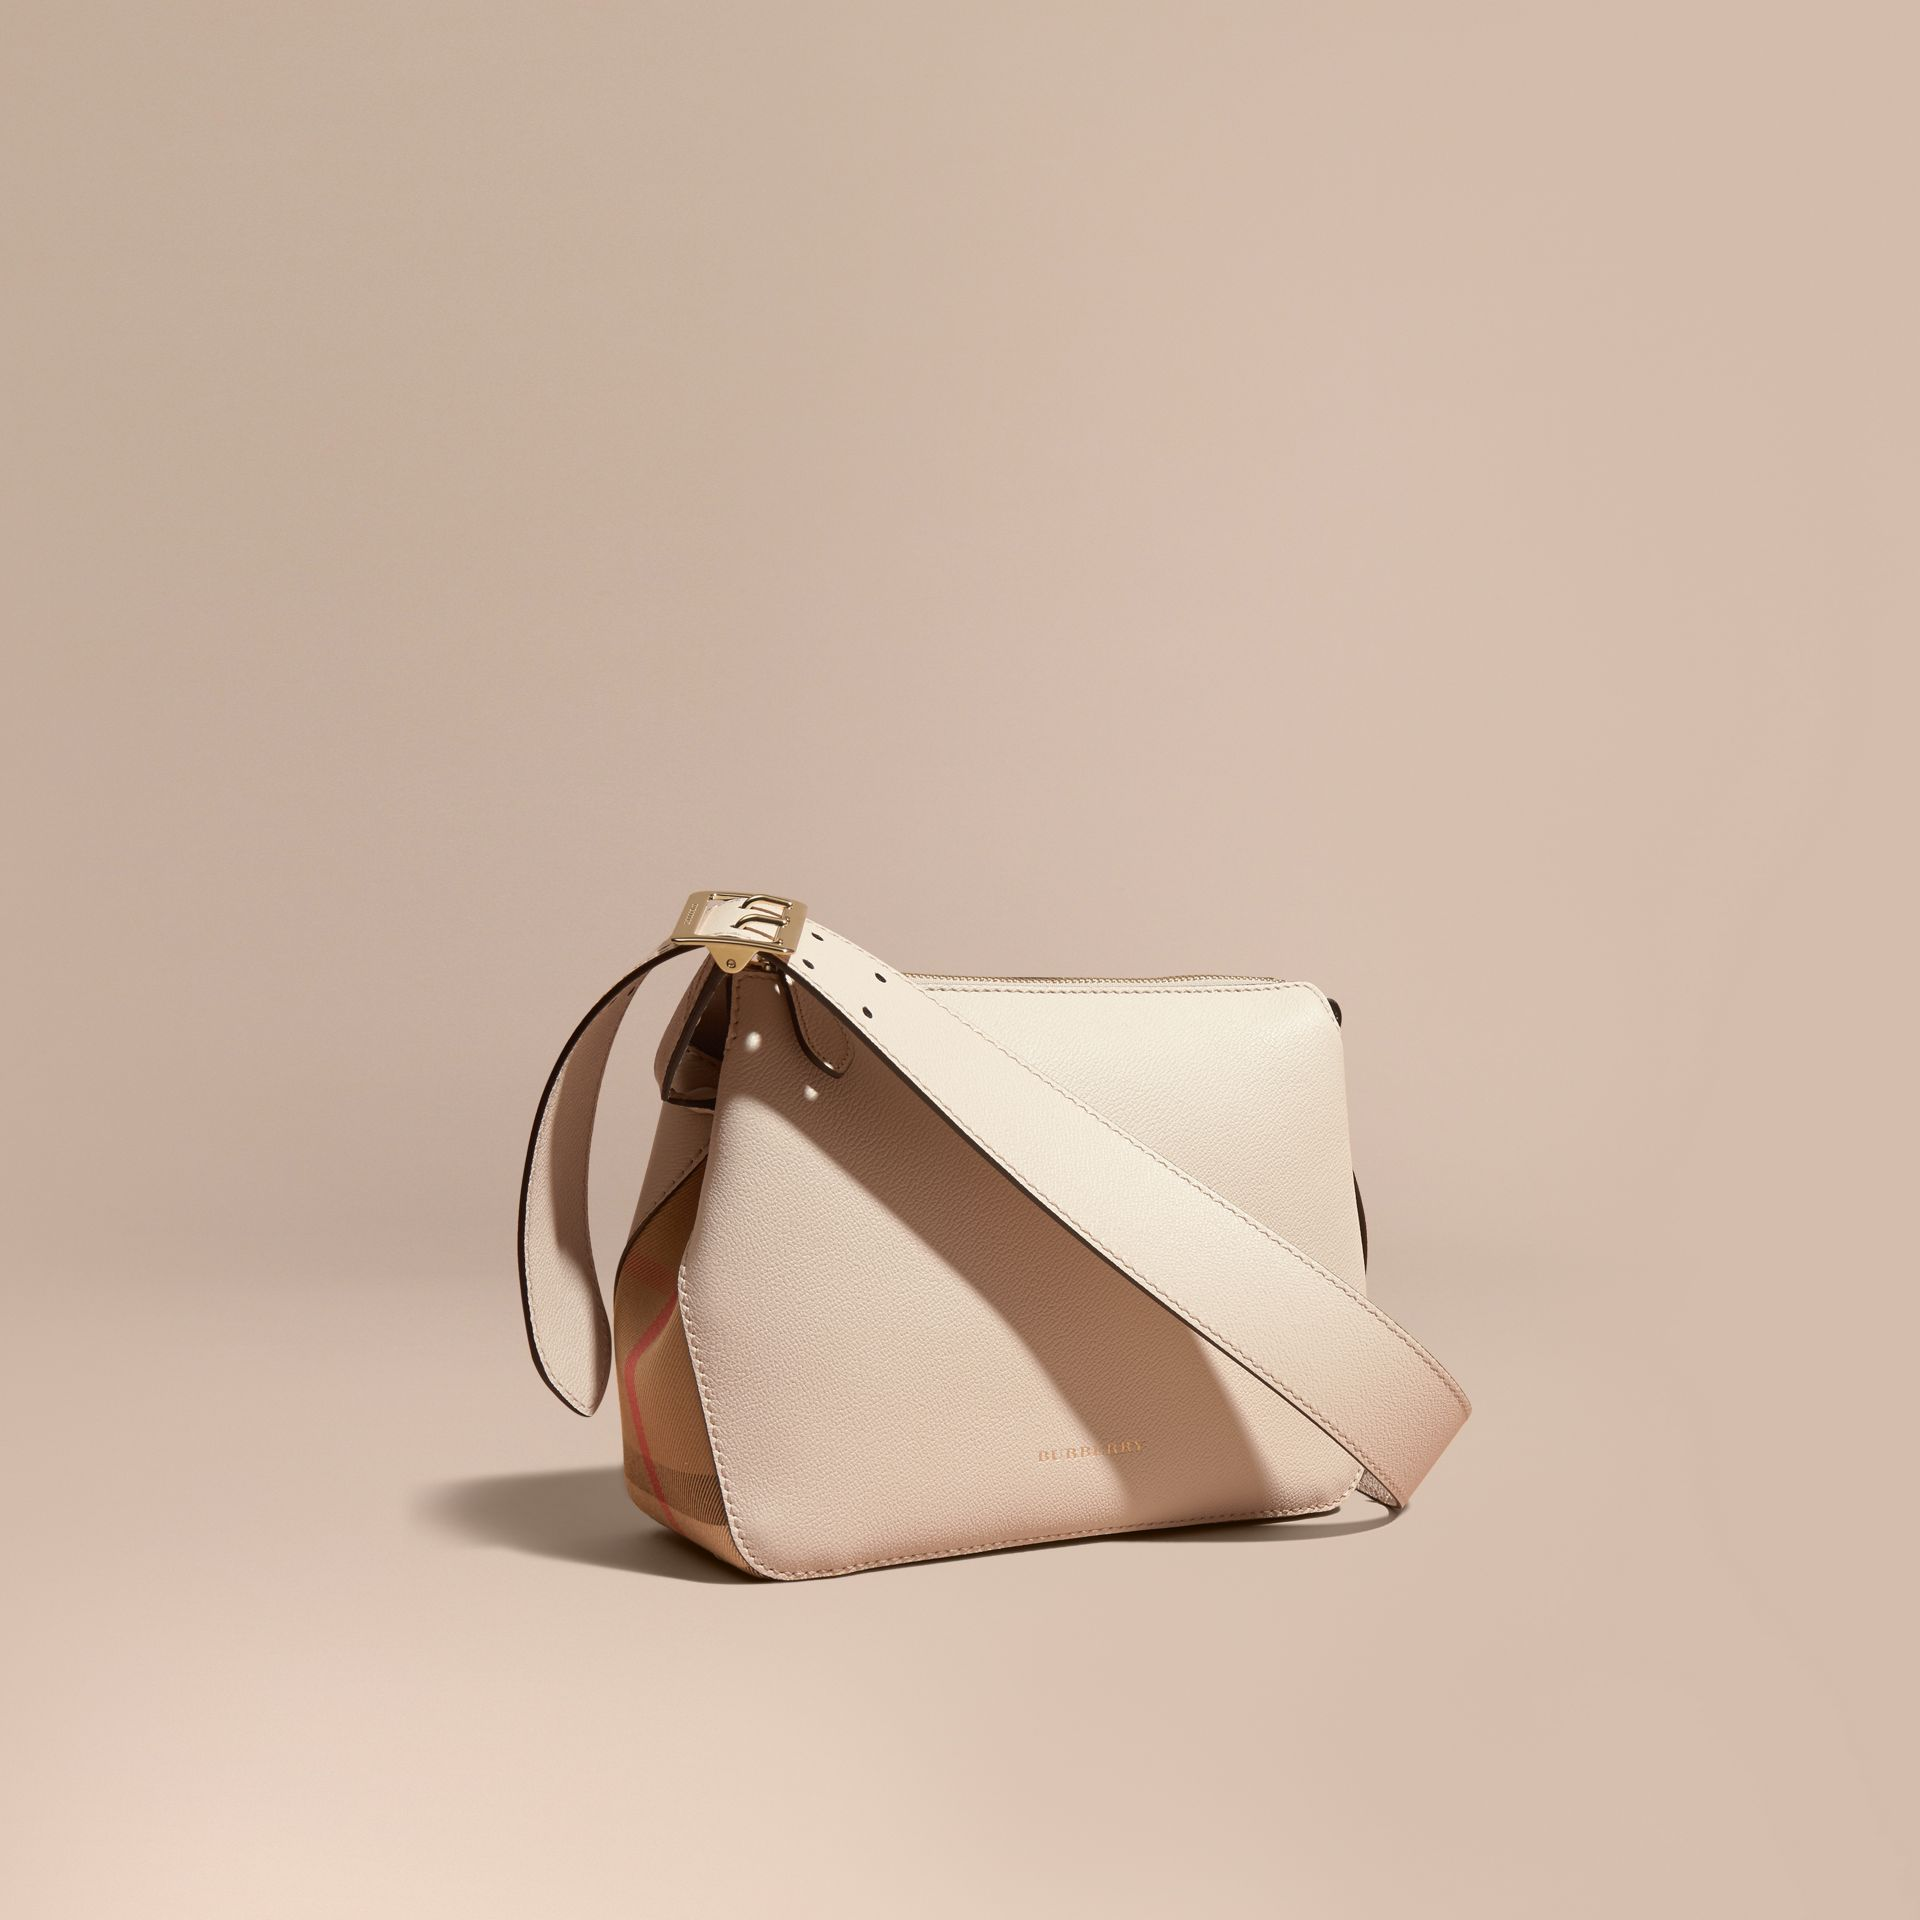 Buckle Detail Leather and House Check Crossbody Bag in Limestone - Women | Burberry - gallery image 1